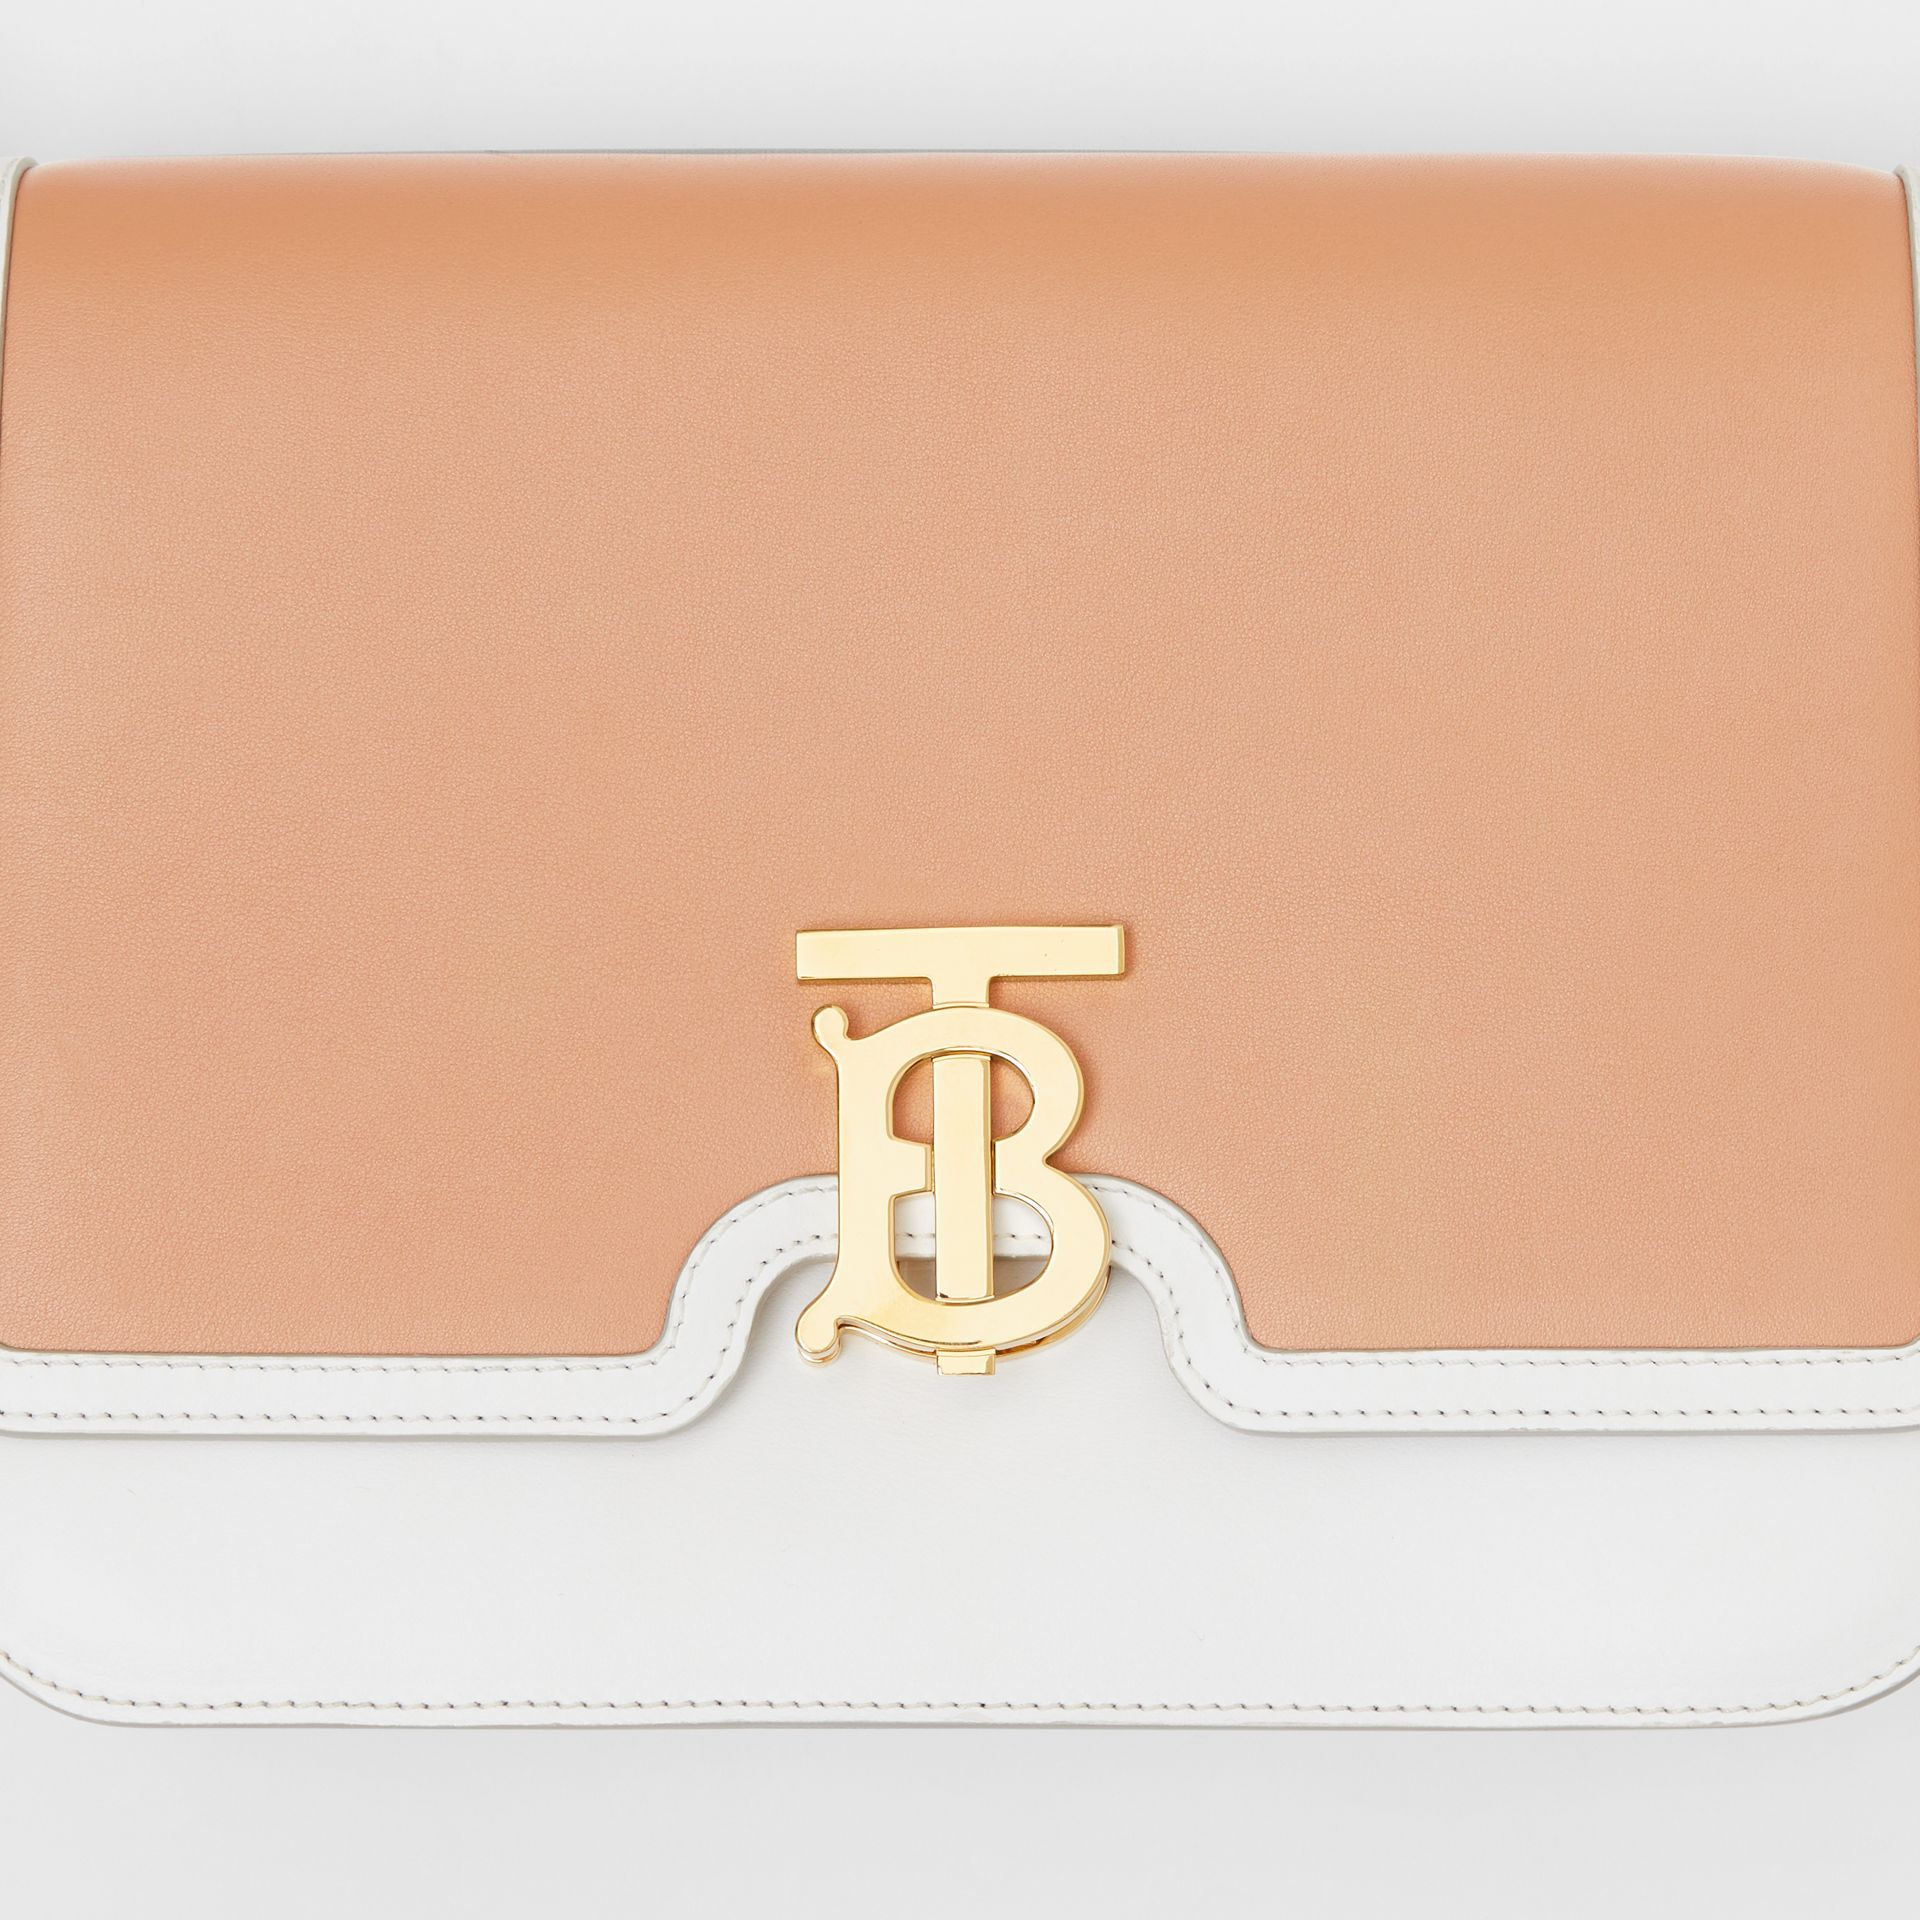 Medium Two-tone Leather TB Bag in Chalk White/light Camel - Women | Burberry United States - gallery image 1